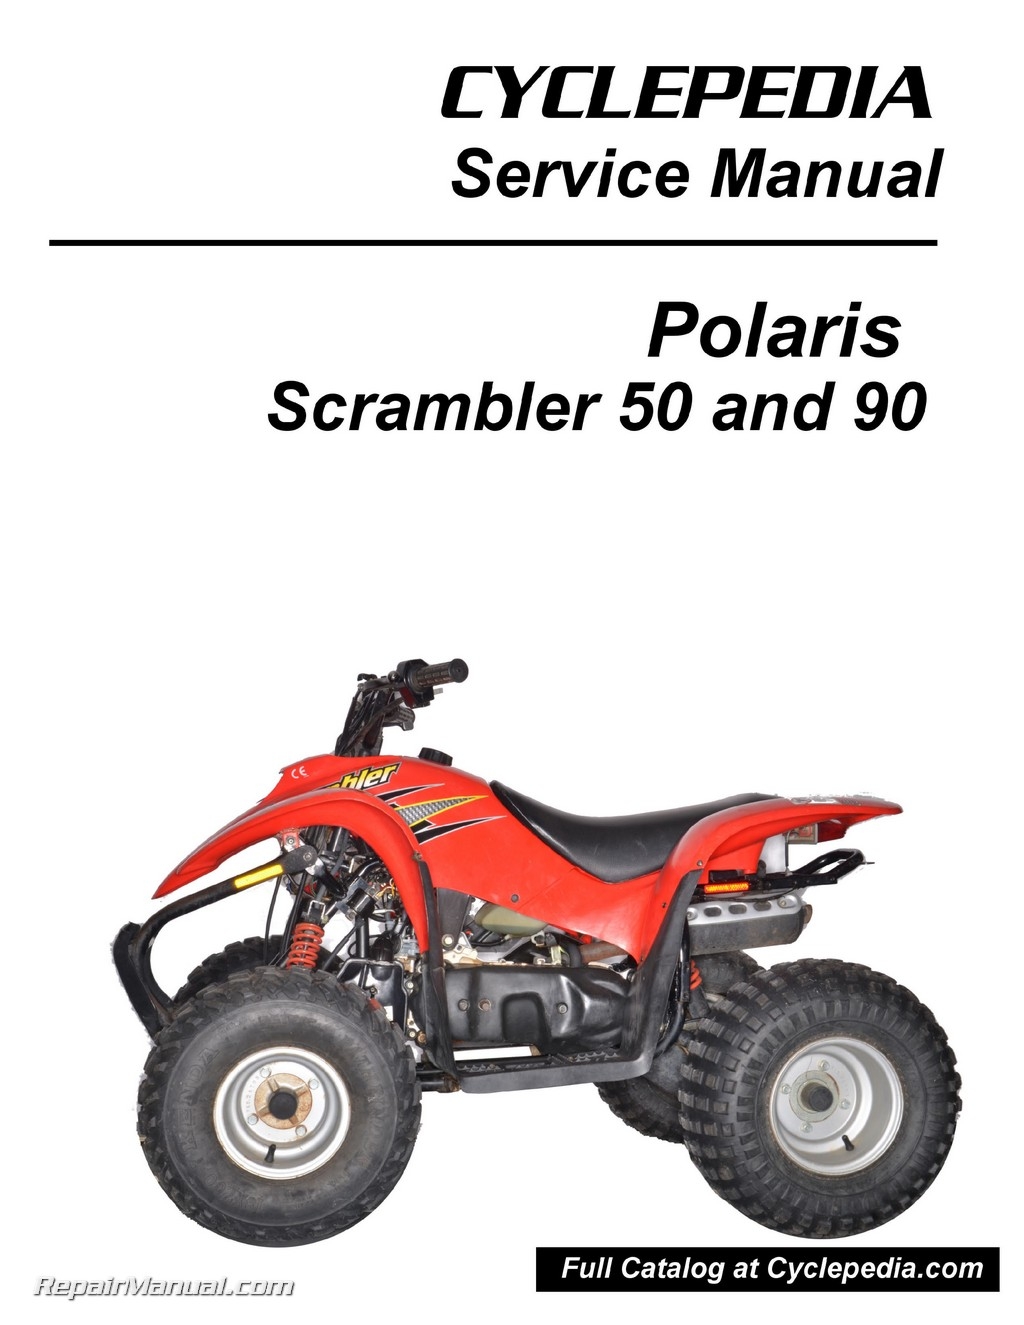 90 Suzuki 50cc Engine Diagram List Of Schematic Circuit 2005 Baja 90cc Wiring Polaris Scrambler Atv Print Service Manual By Cyclepedia Rh Repairmanual Com